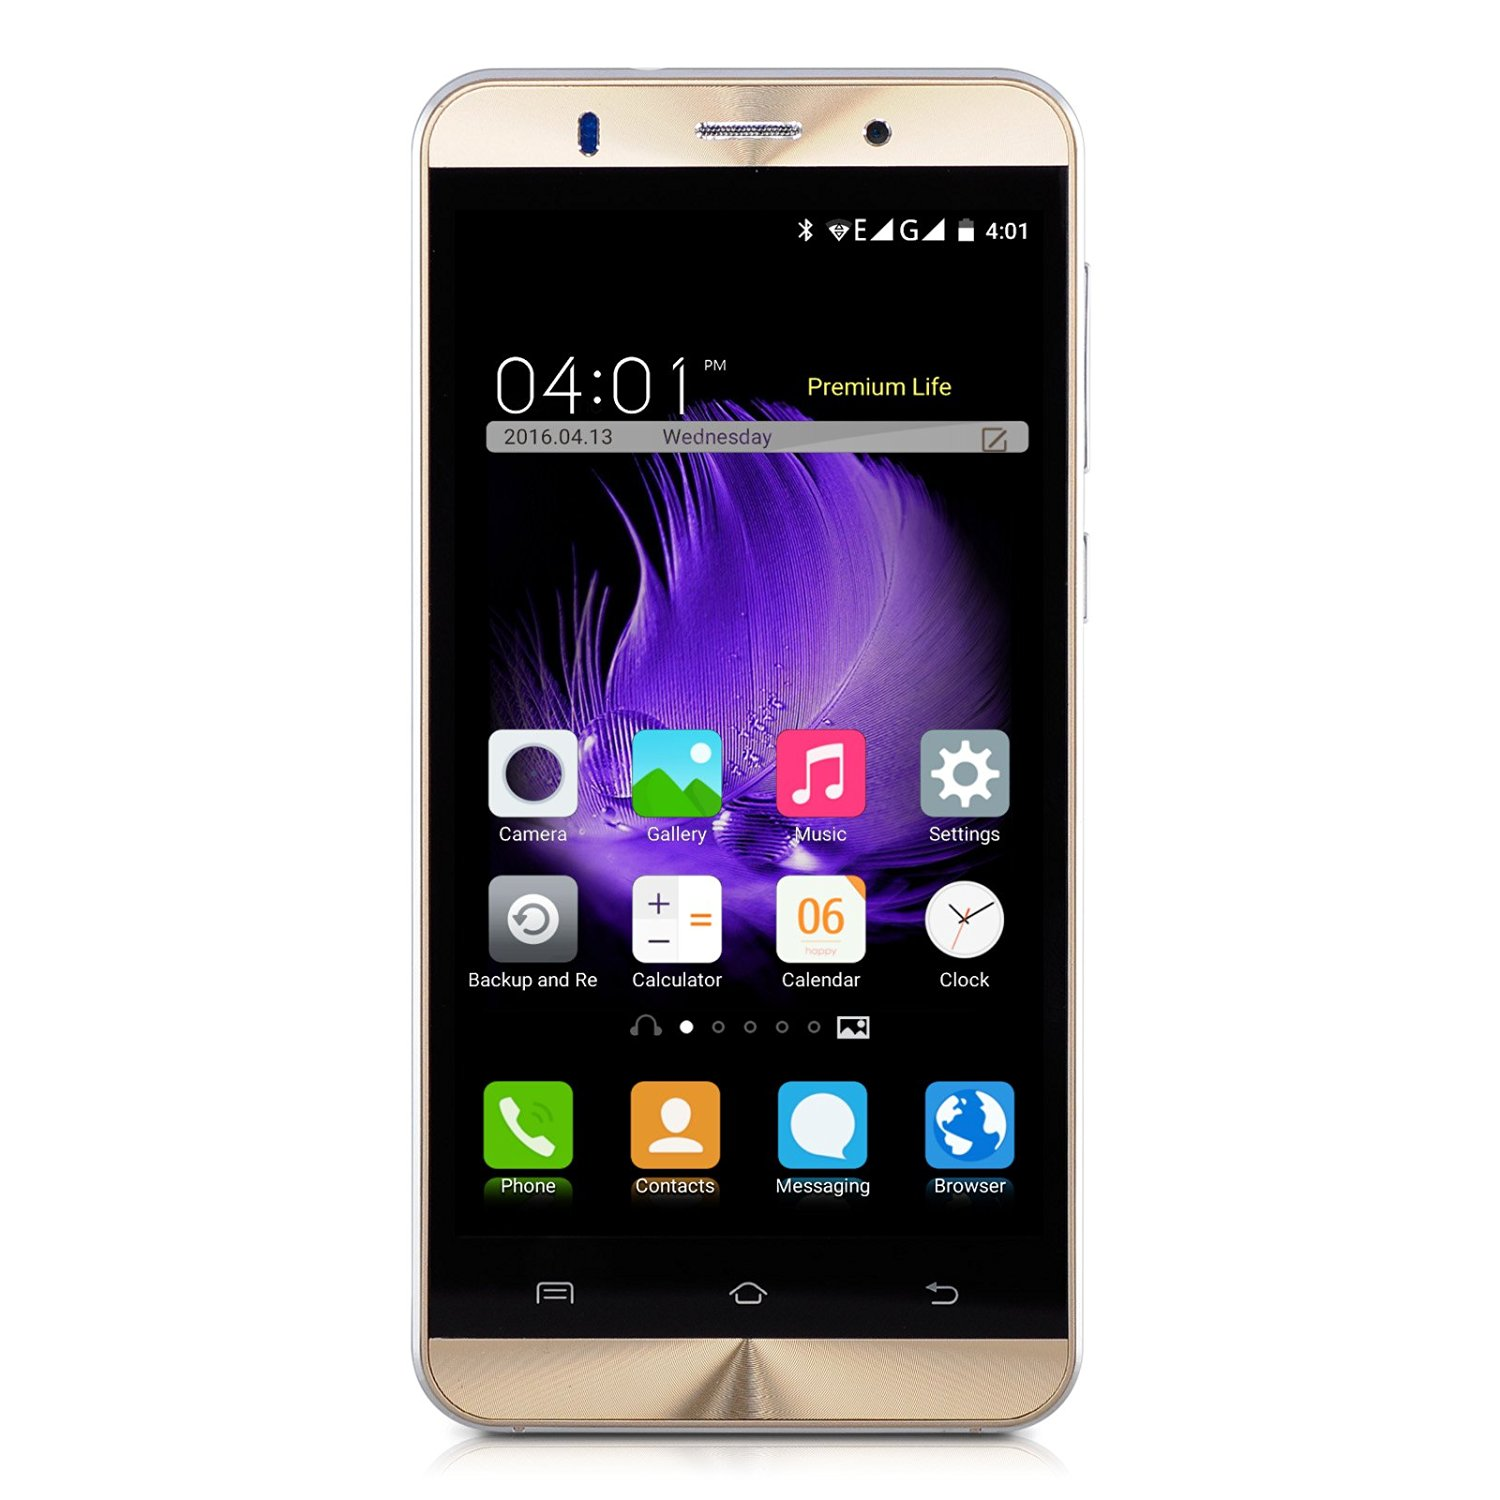 Xgody X15 5 Inch 3G Unlocked Cell Phone 8GB/1GB Quad Core Android 5.1 qHD Screen Dual SIM with Wi-Fi for T-Mobile AT&T Telefonos Desbloqueados(Gold)